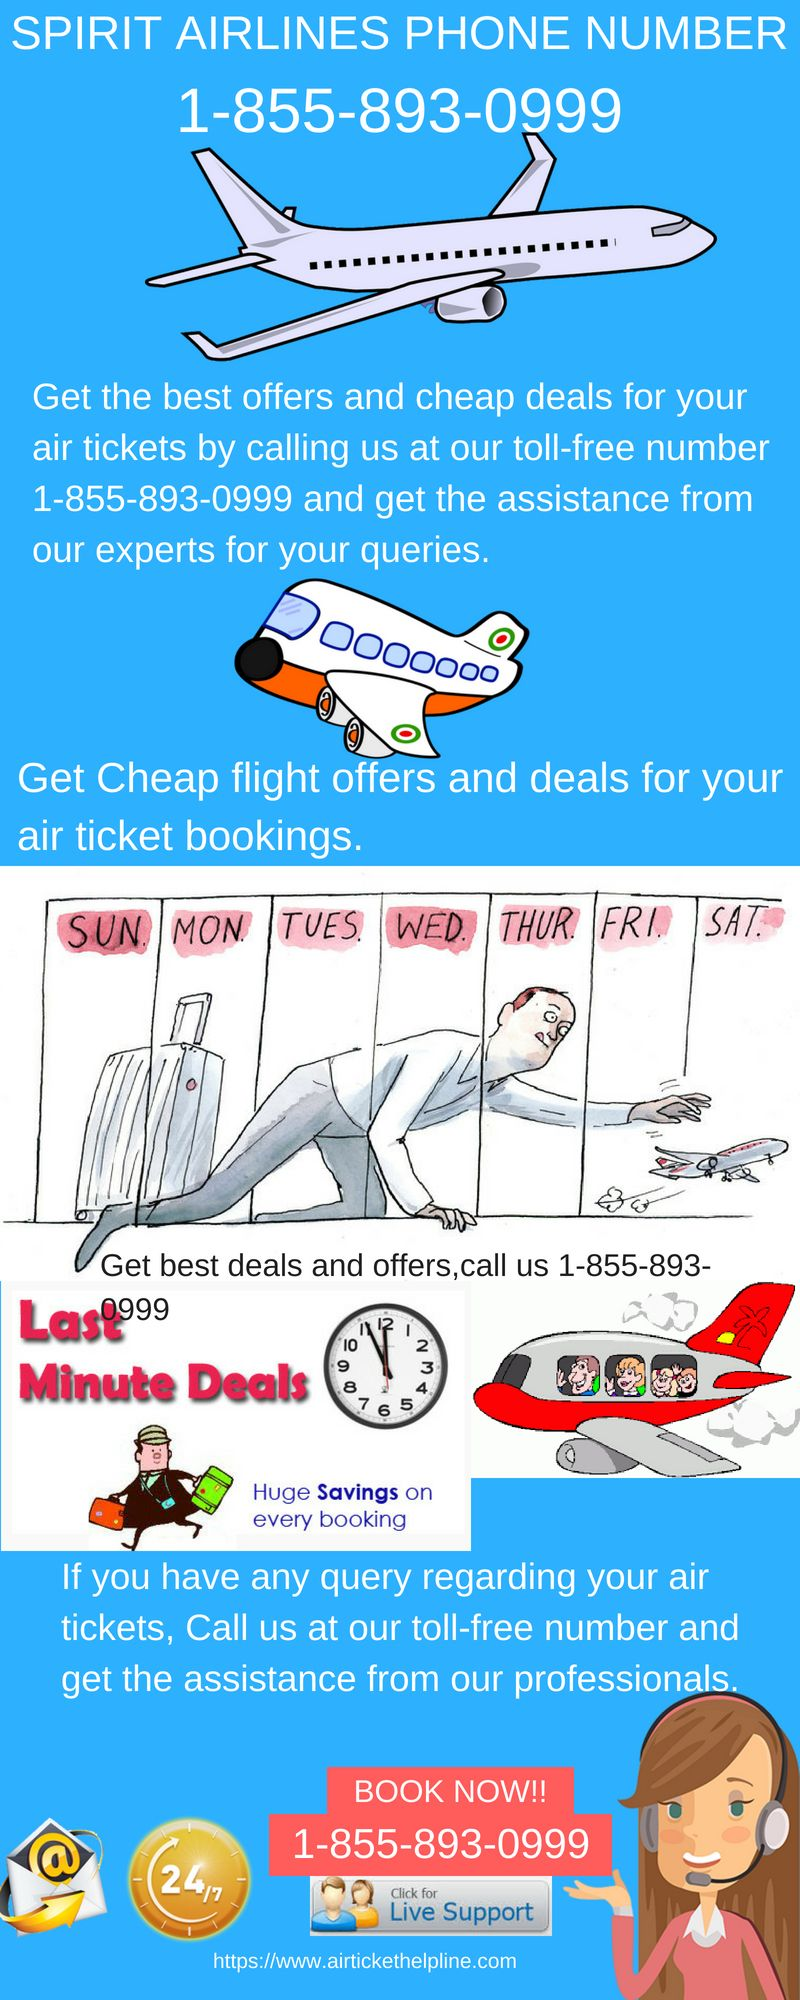 Book your tickets and get the best deals for your bookings